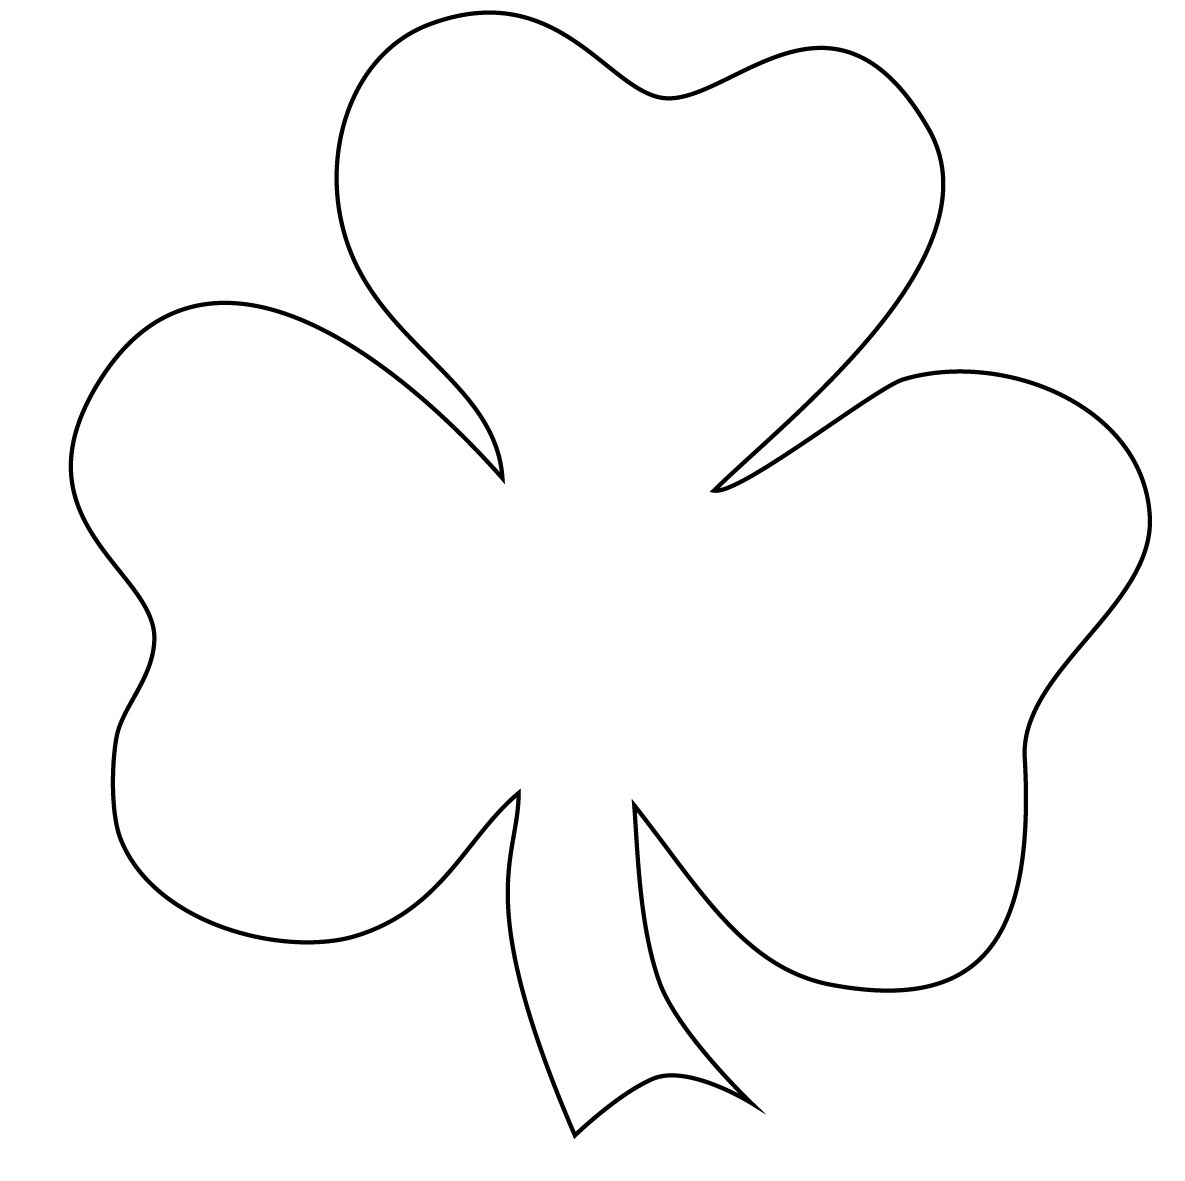 Free Printable Shamrock Coloring Pages For Kids - Free Printable Shamrocks